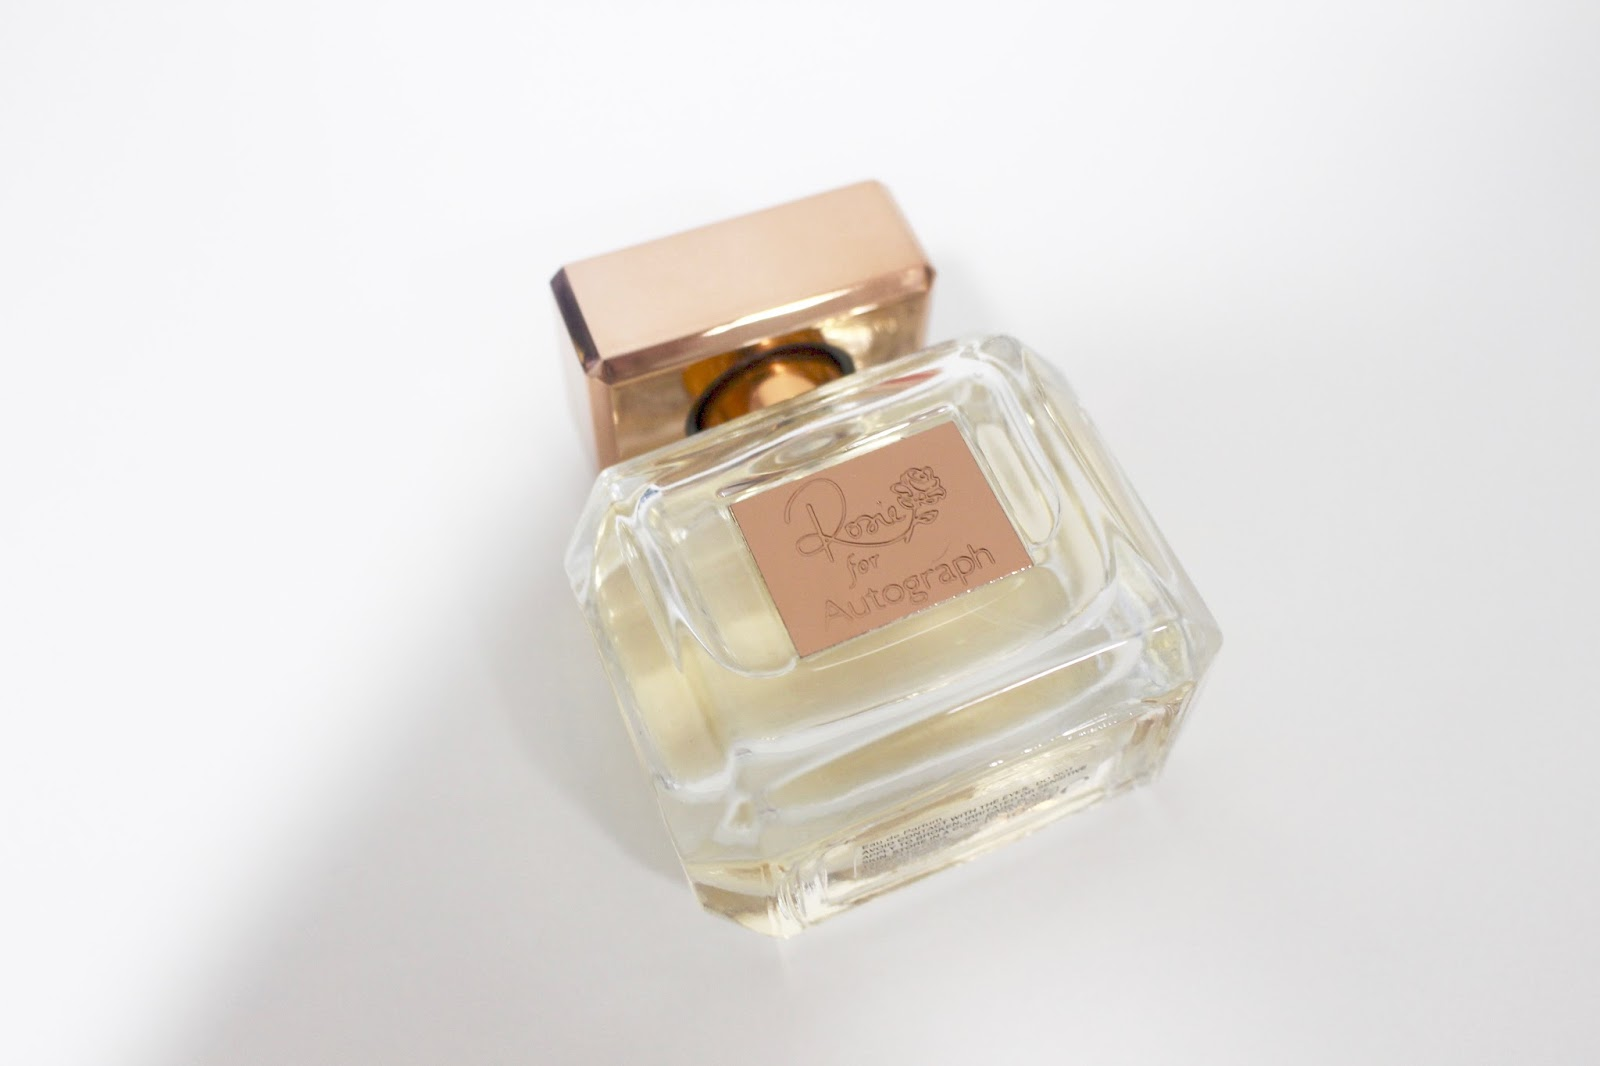 Rosie for Autograph – Summer Rose & the original eau de parfum